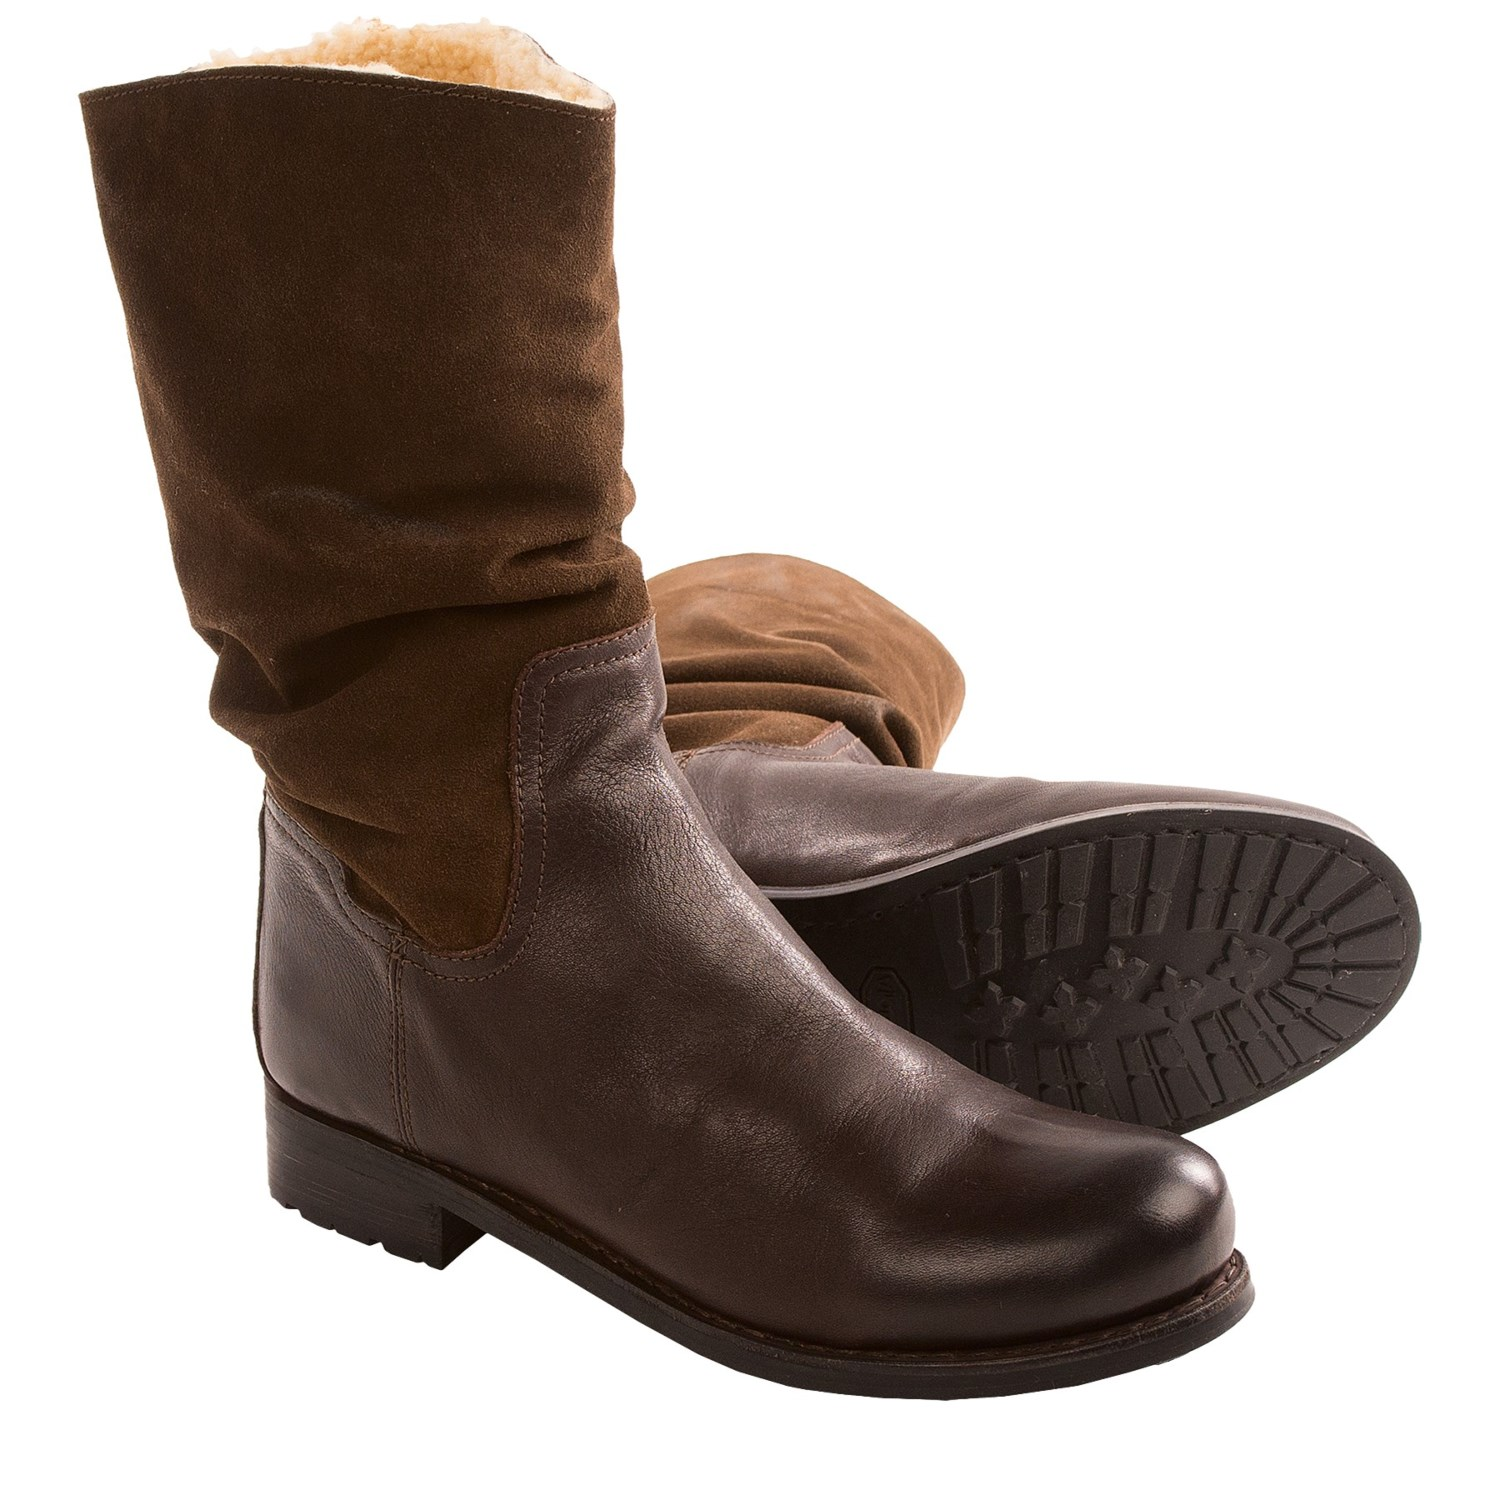 Born Yuma Shearling Boots (For Women